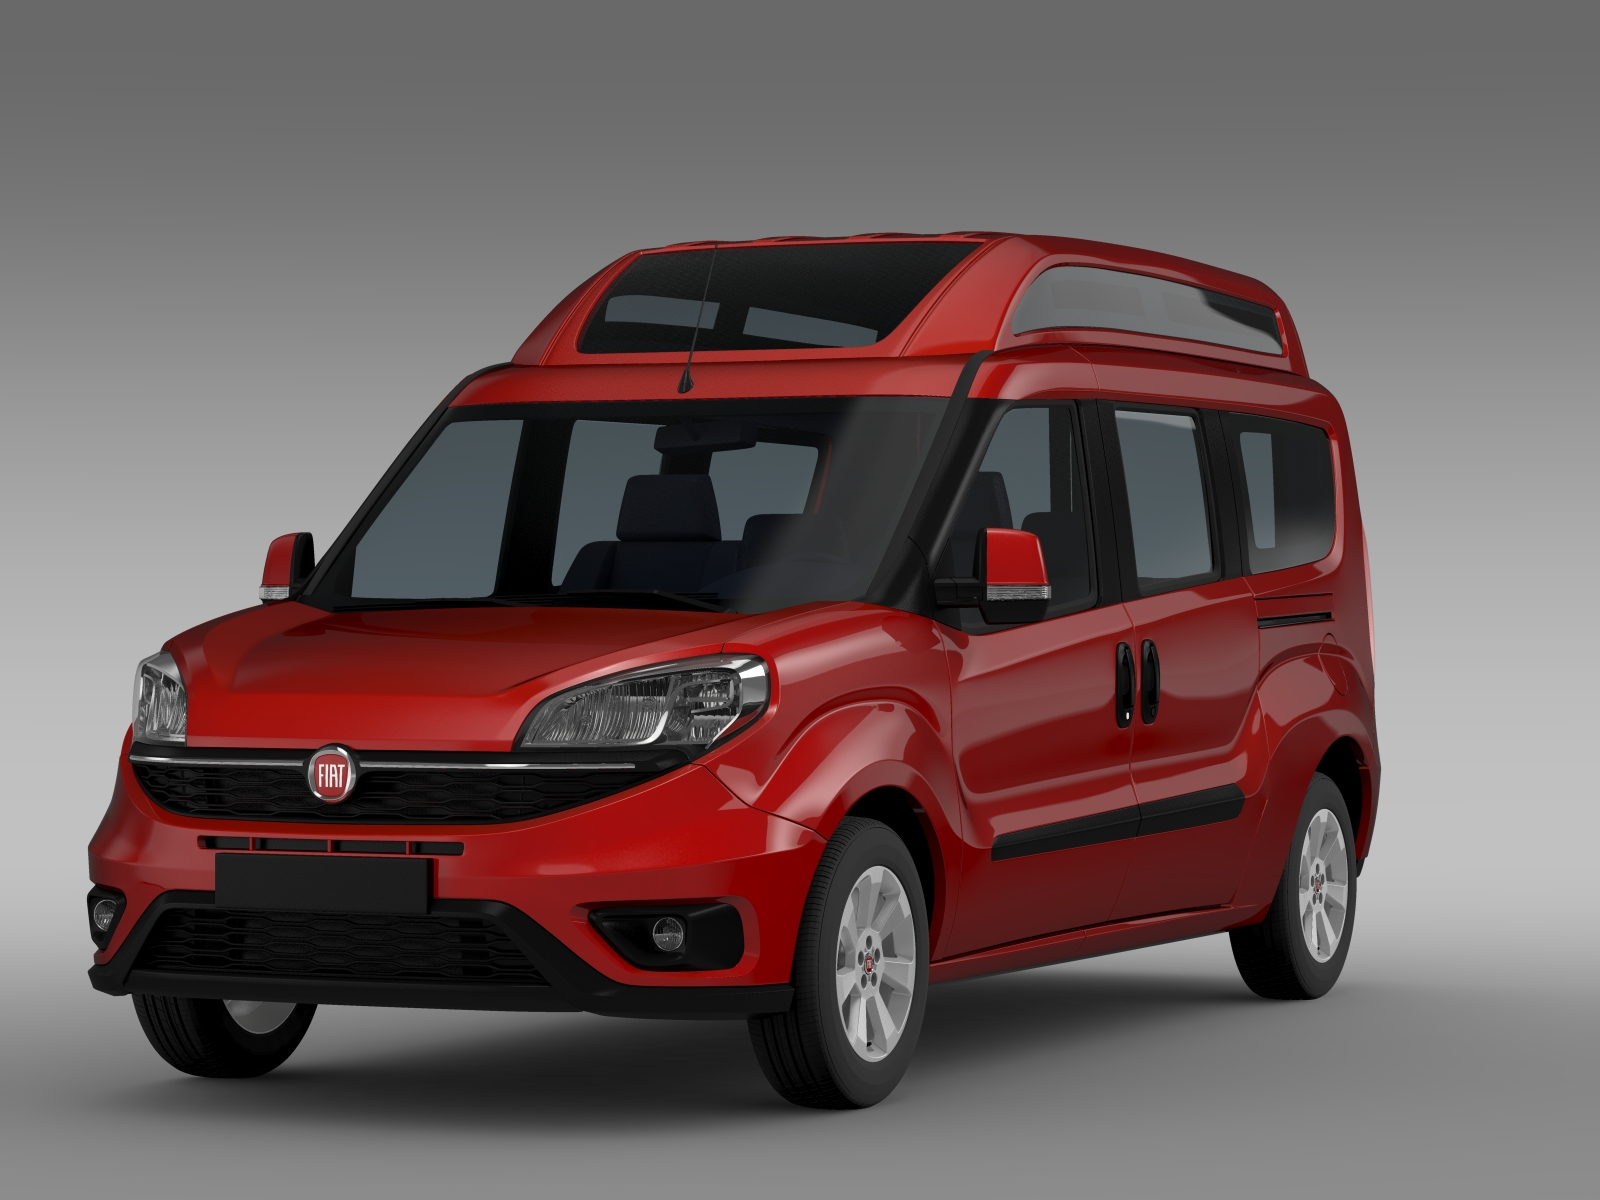 fiat doblo highroof maxi 263 2015 3d model buy fiat doblo highroof maxi 263 2015 3d model. Black Bedroom Furniture Sets. Home Design Ideas